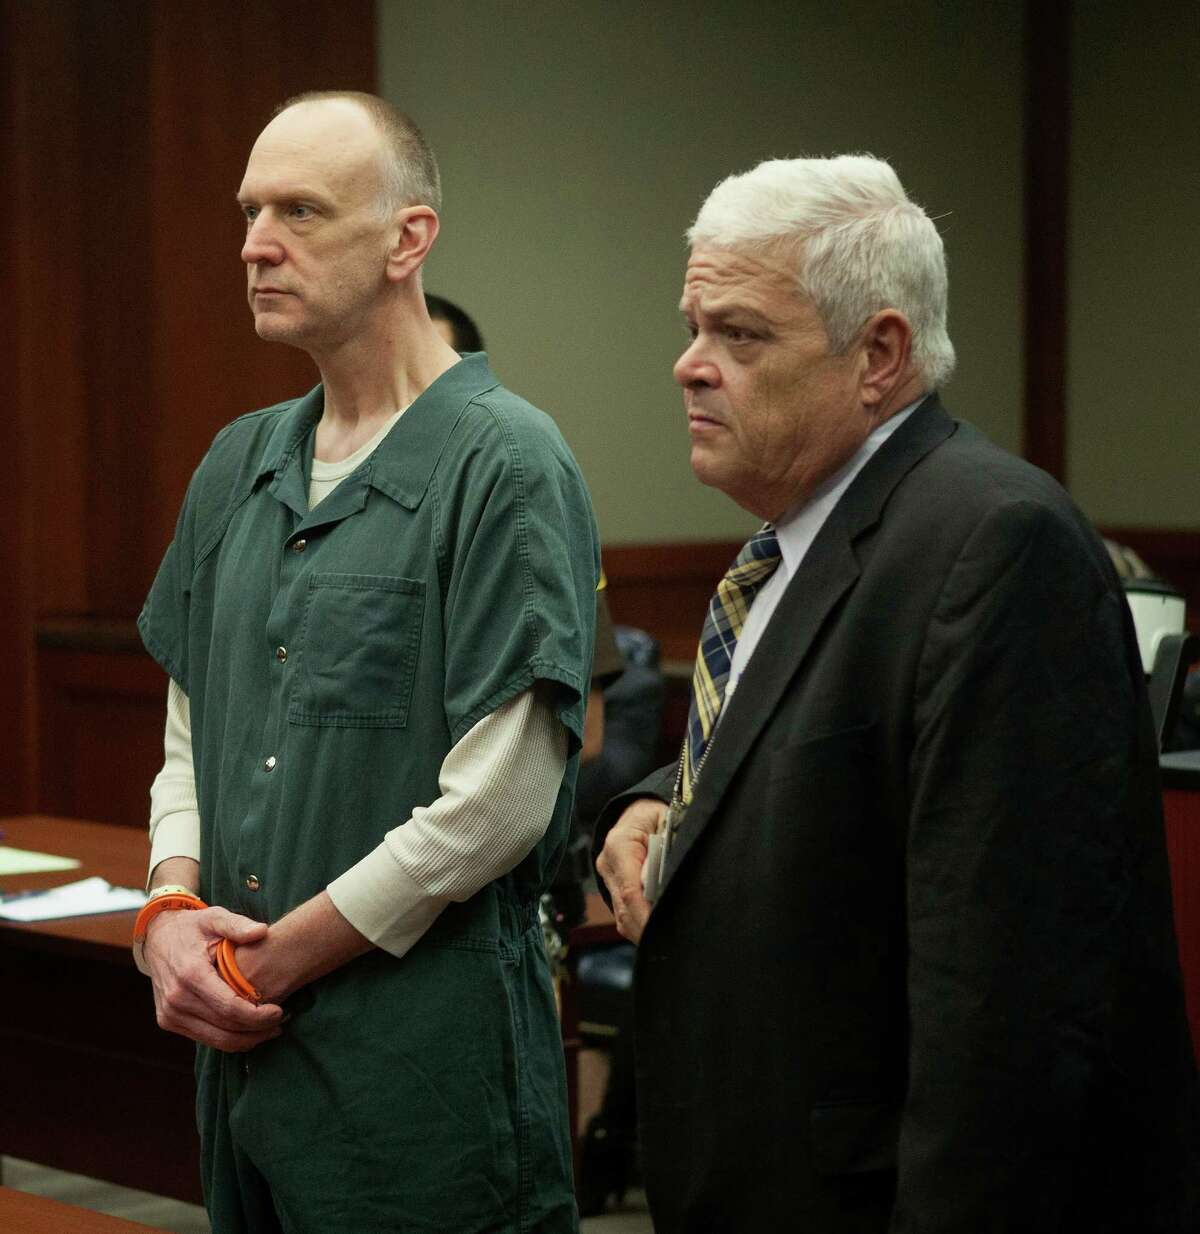 Ronald Scott Catt, left, and his attorney Sid Crowley stand before Judge Clifford Vacek in the 400th District Court, Thursday, Nov.14, 2013 in Richmond, Tx. Catt is accused of robbing several banks using his daughter and son in the Fort Bend County area. (Bob Levey/For The Chronicle)